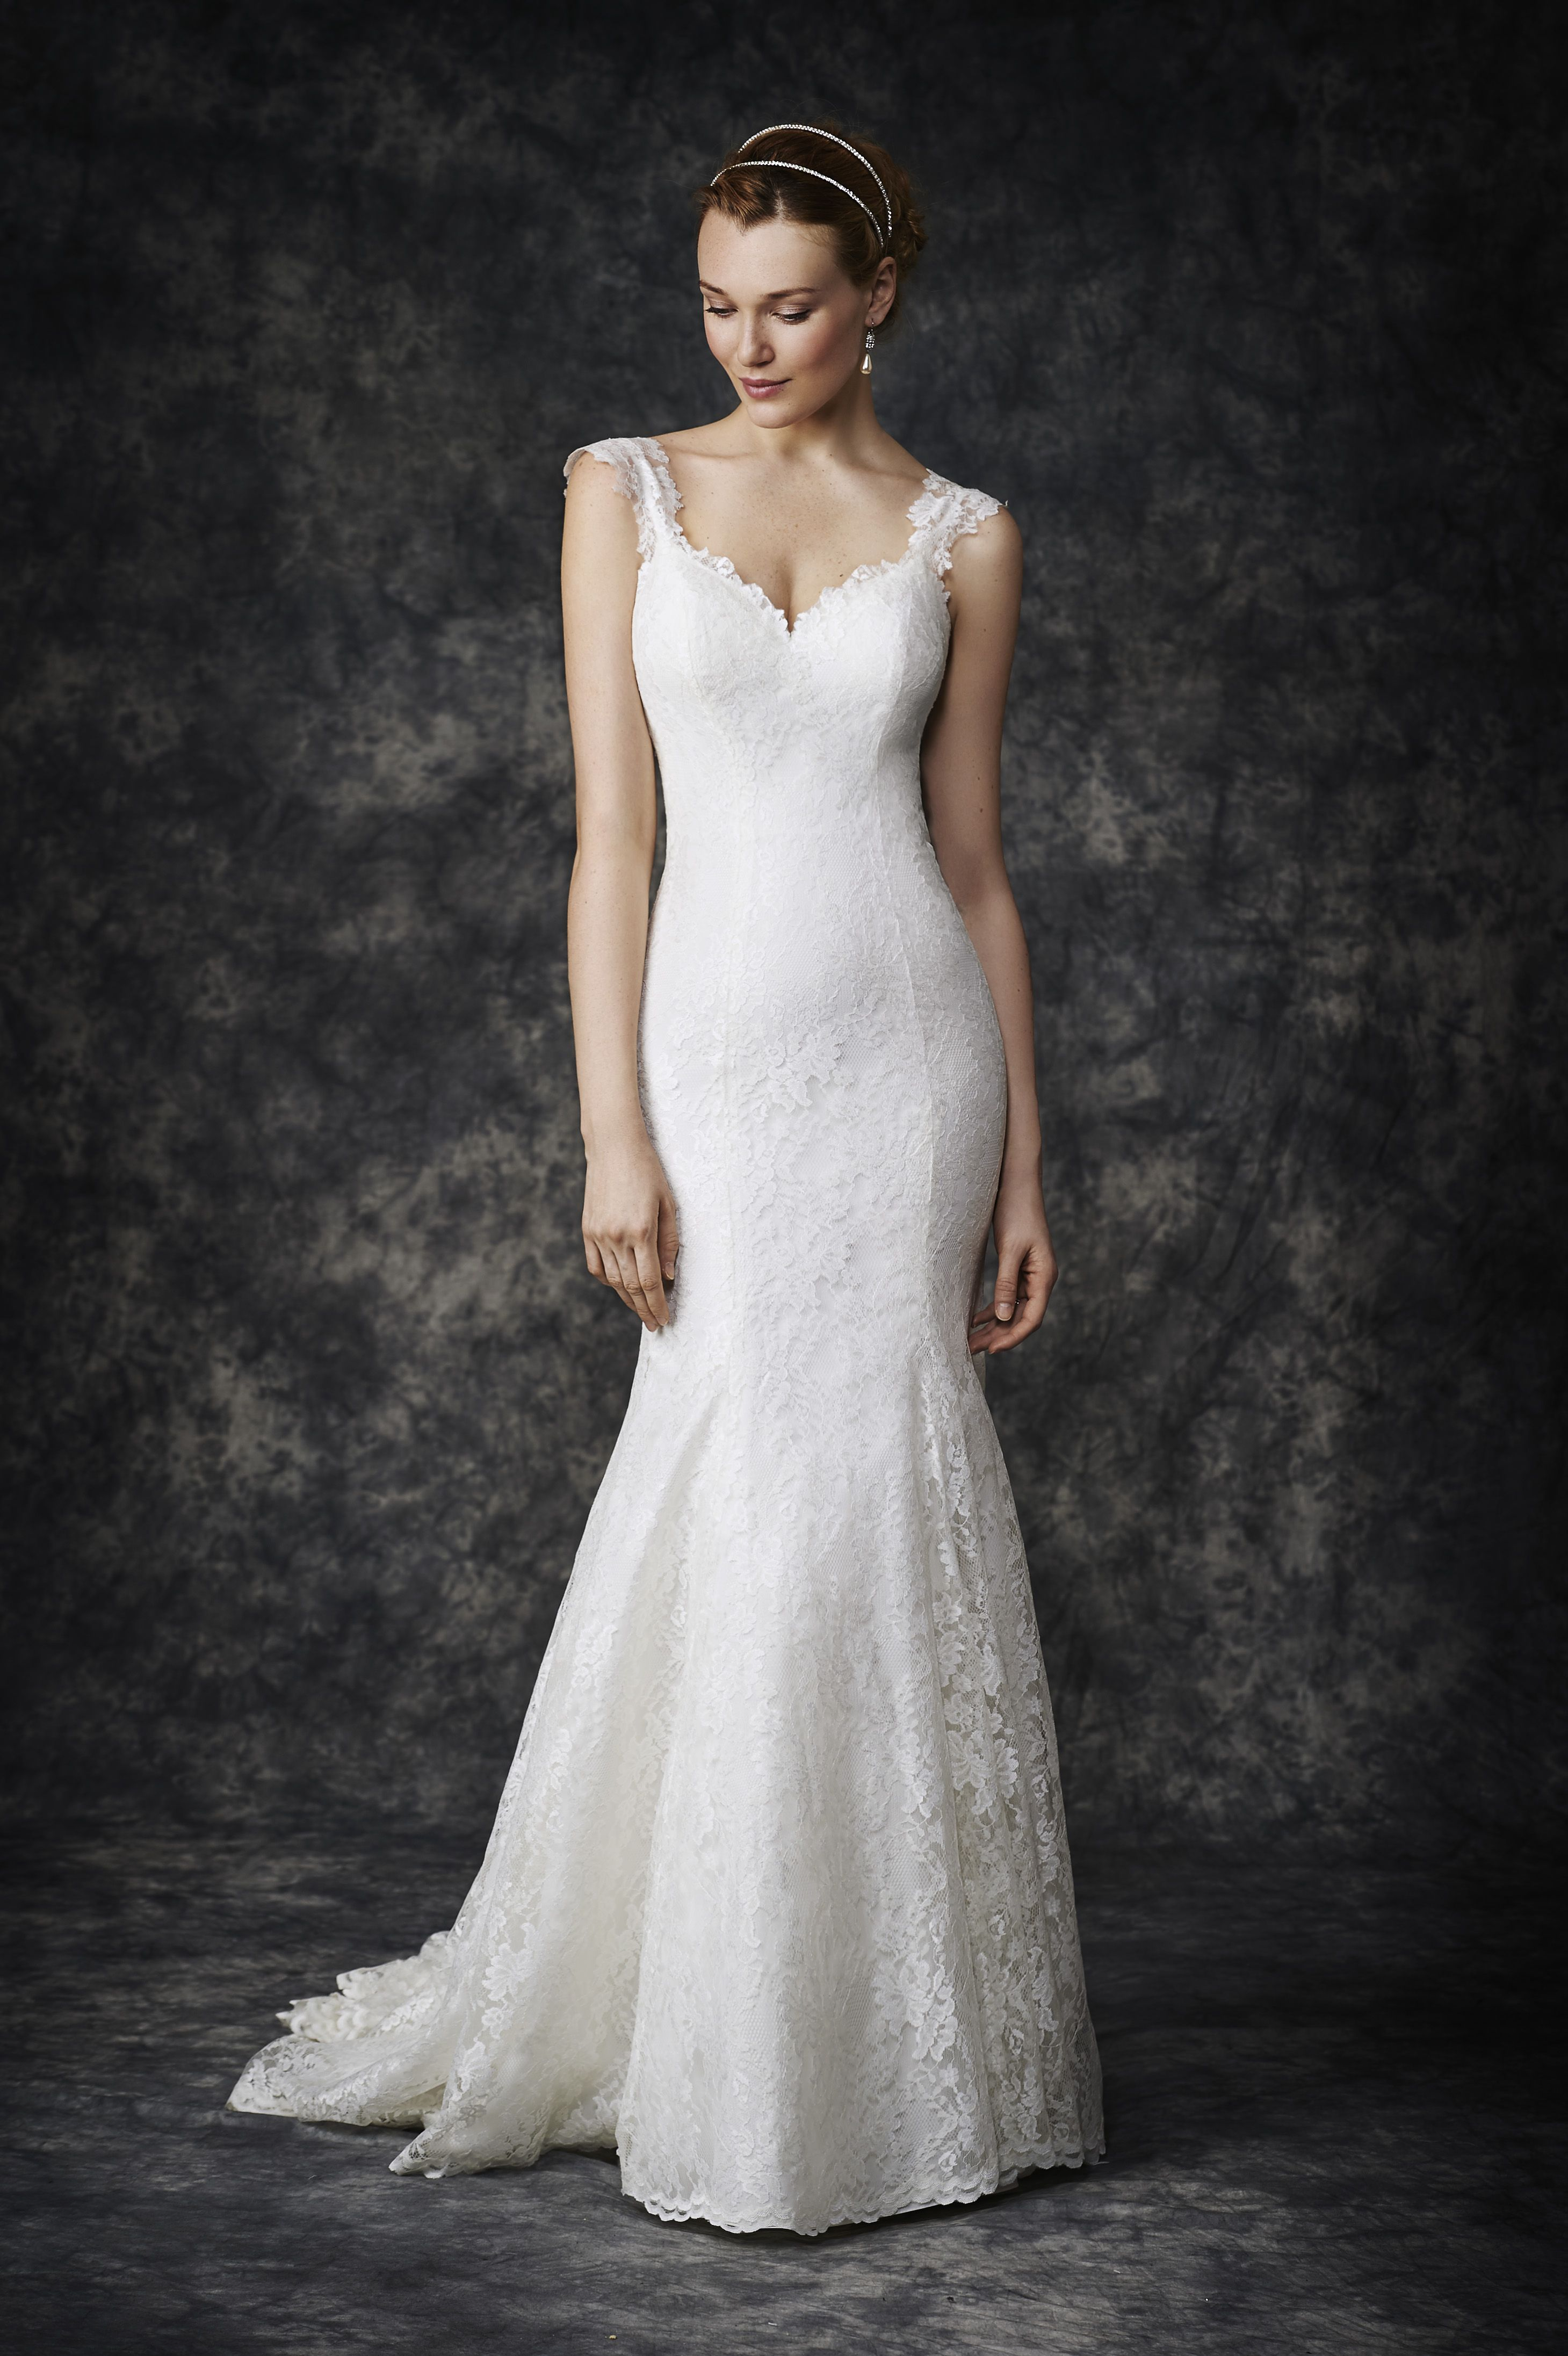 Wedding dresses for 2nd marriage  An understated lightweight lace wedding dress ideal for a second